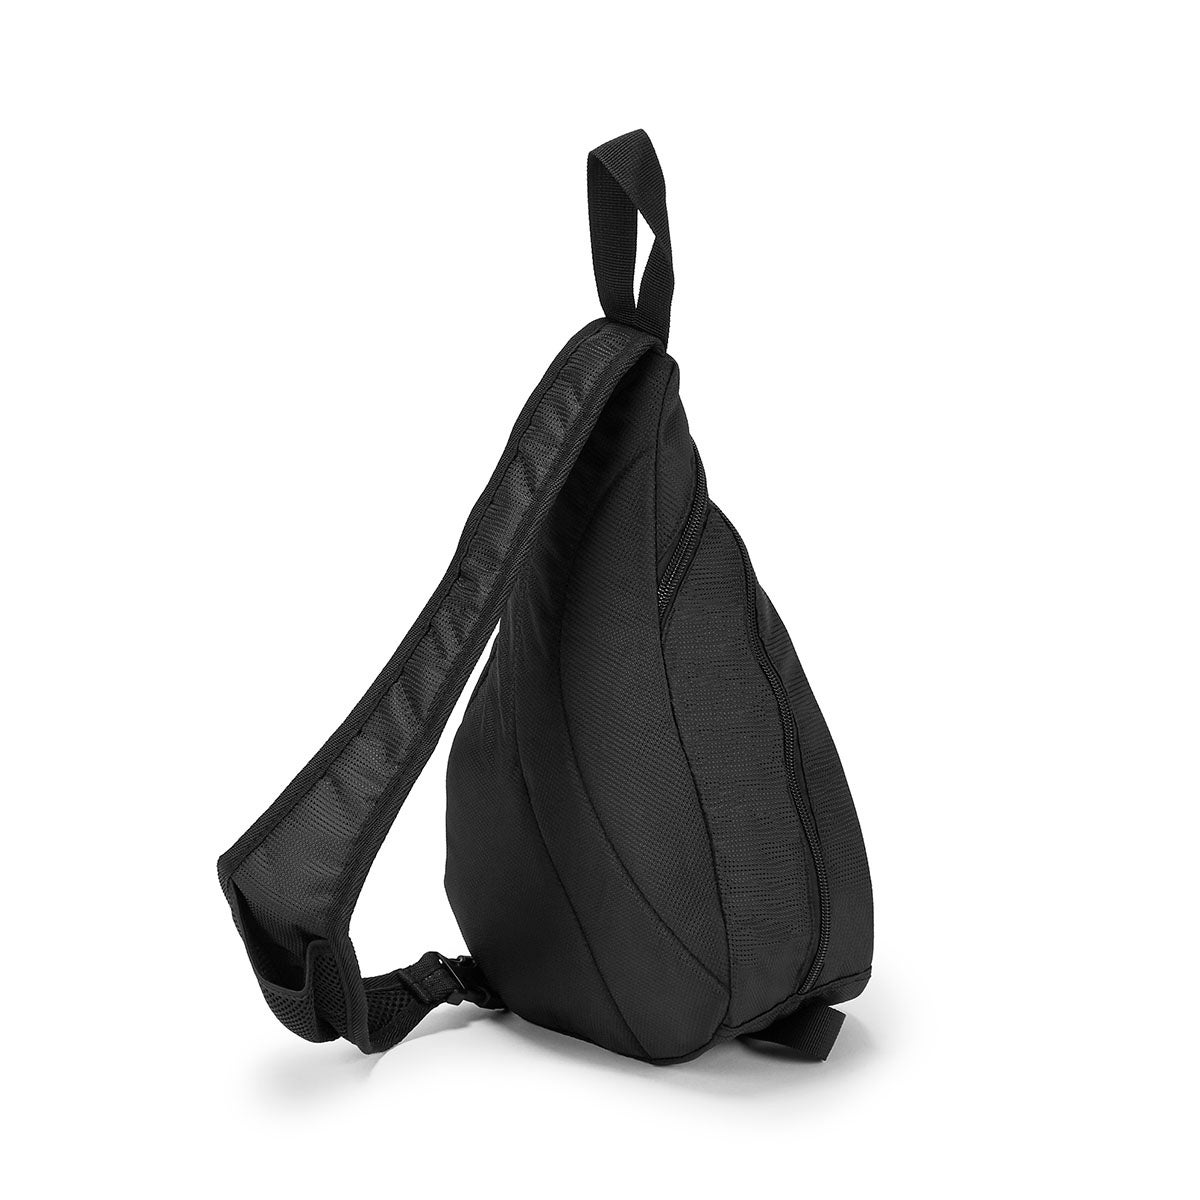 Unisex Roots73 black polyester sling bag